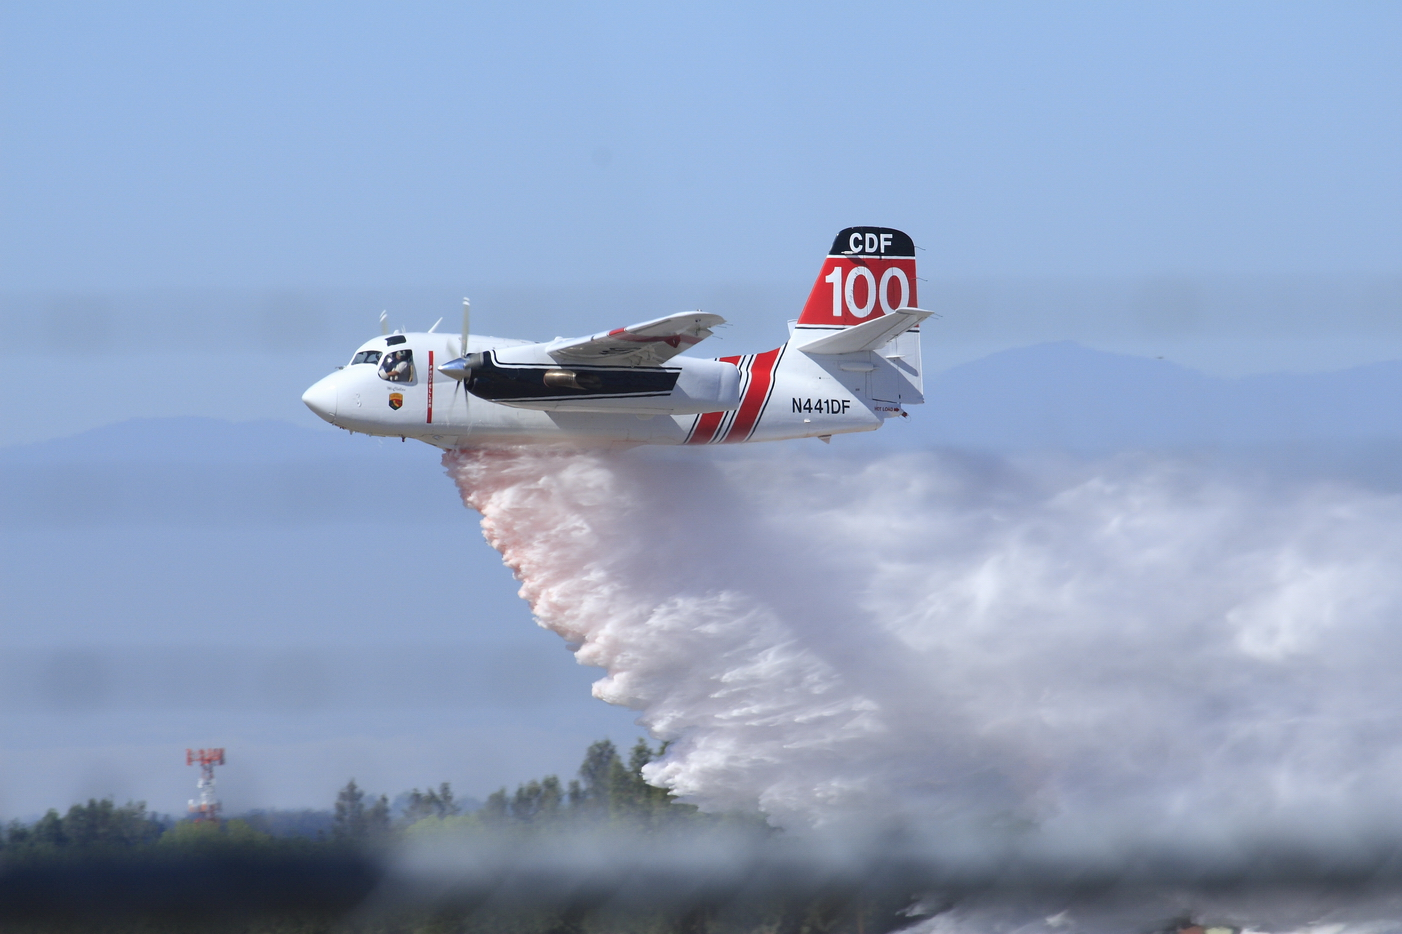 Air Tanker dropping its load